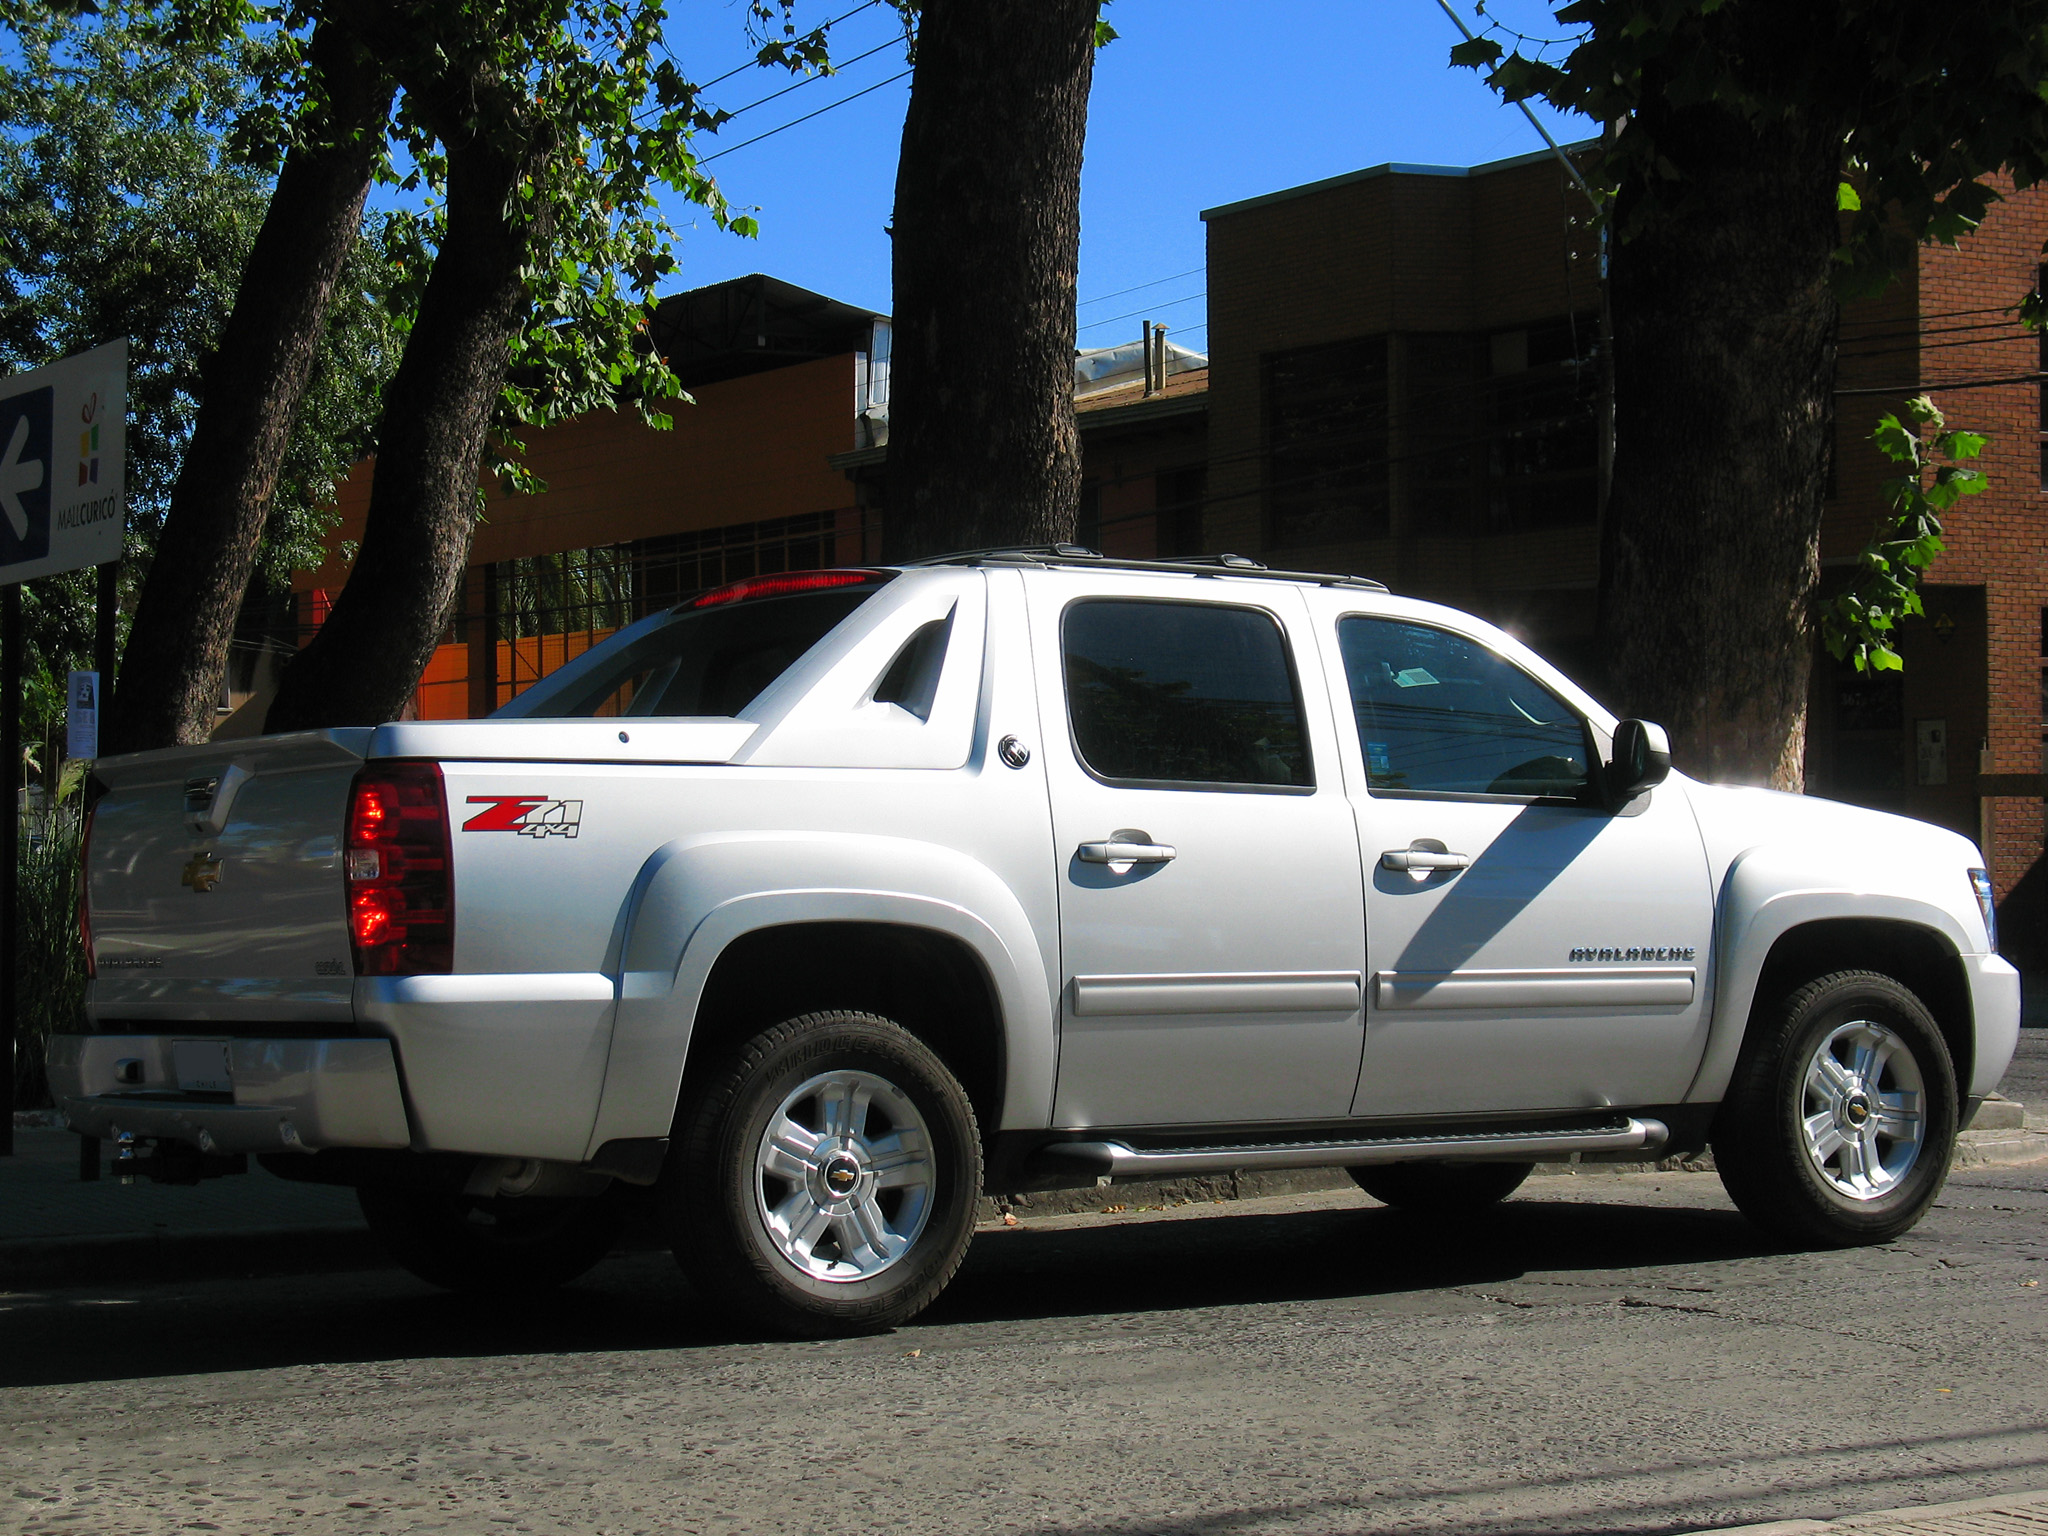 12703_chevrolet-avalanche-z71-2013-flickr-photo-sharing Great Description About Chevy Avalanche 2013 with Amazing Pictures Cars Review